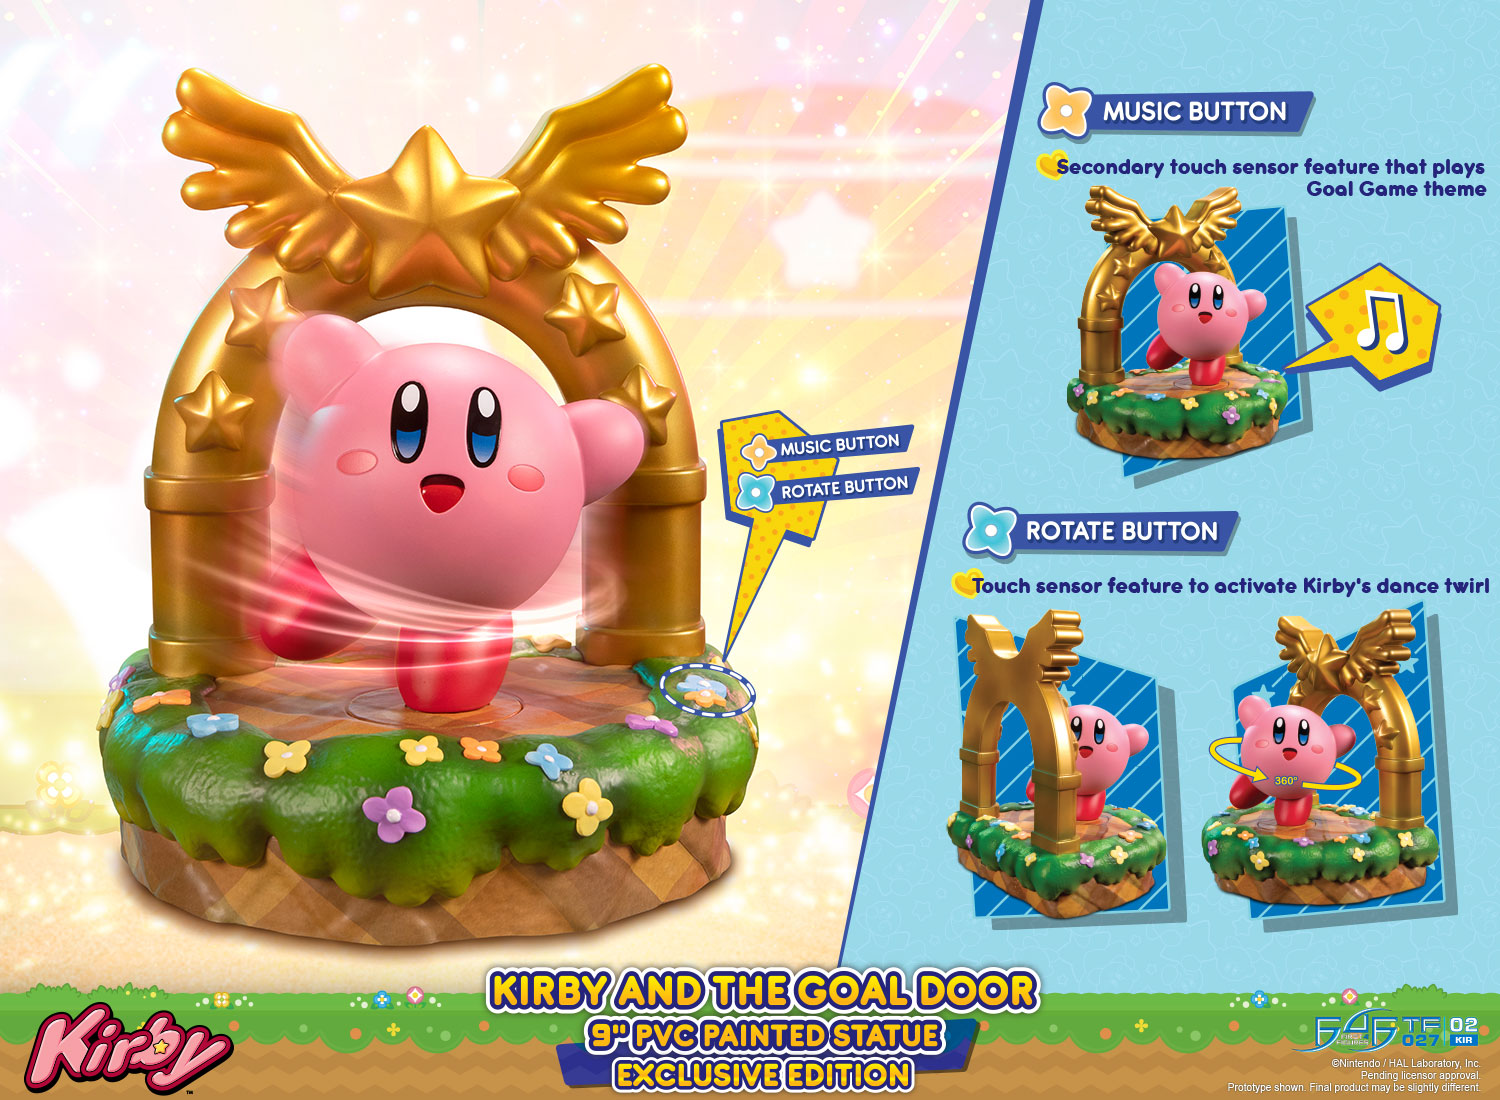 Kirby and the Goal Door (Exclusive Edition)